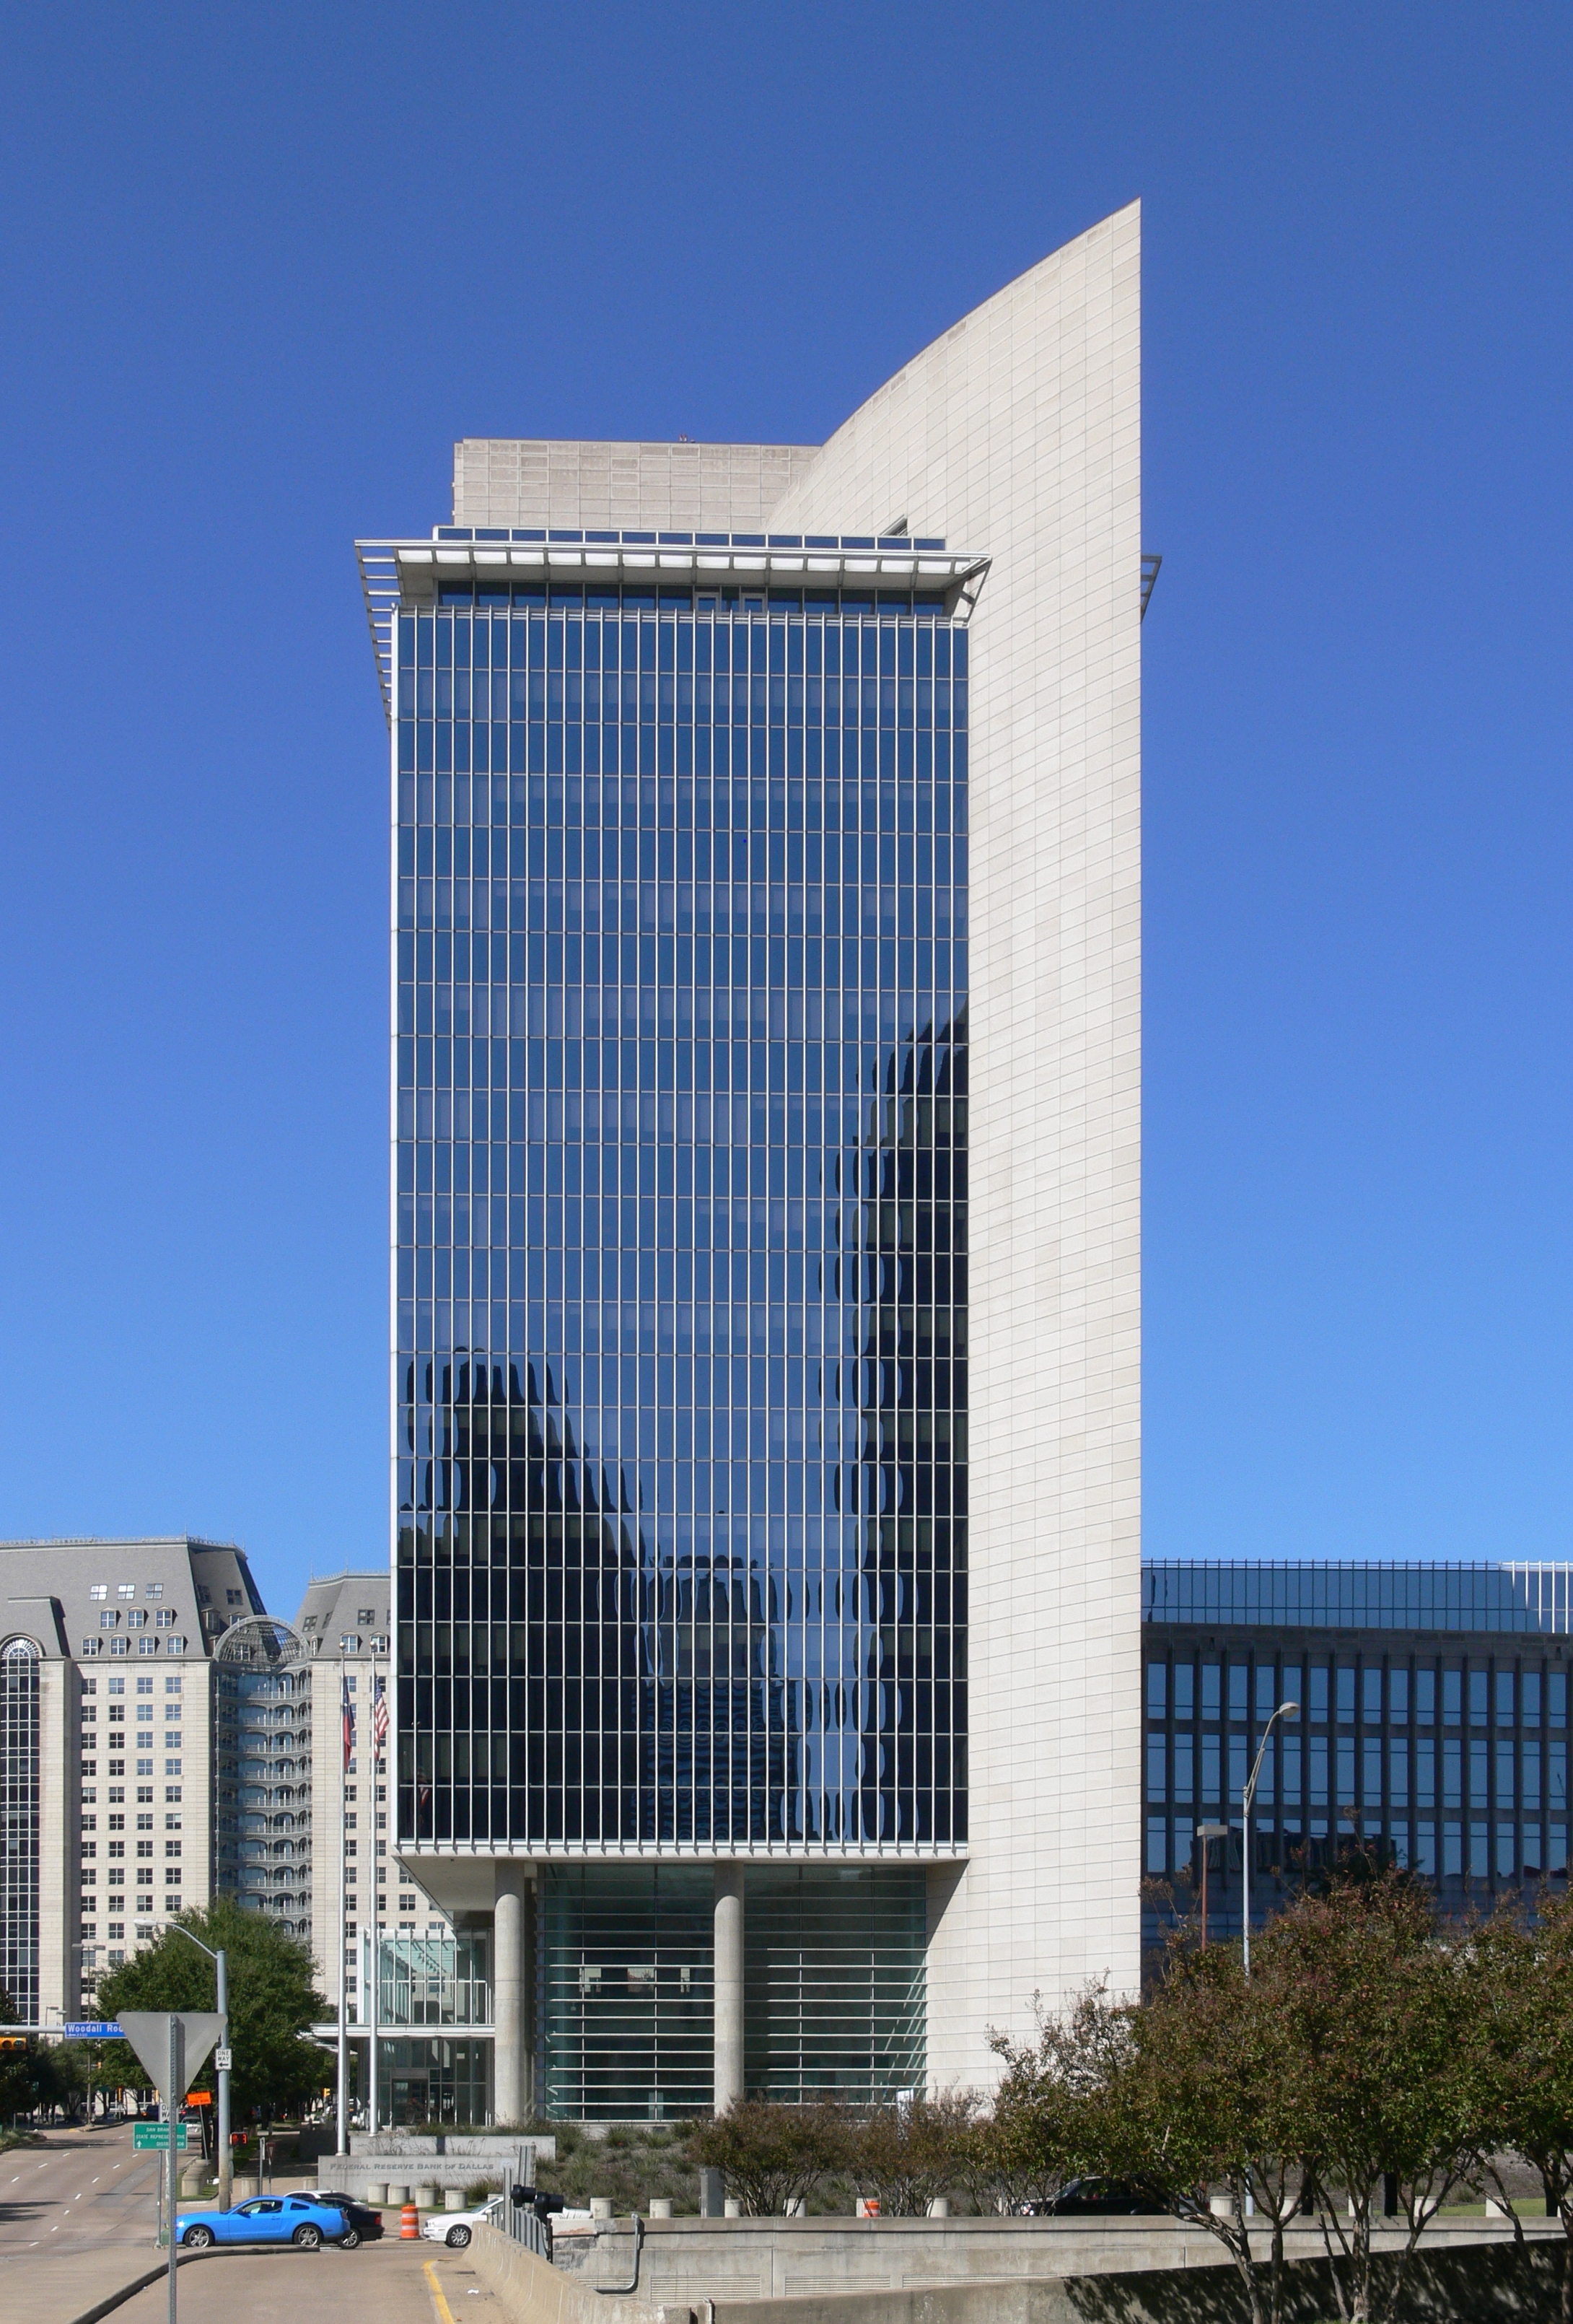 File:Federal Reserve Bank of Dallas 2 jpg - Wikimedia Commons